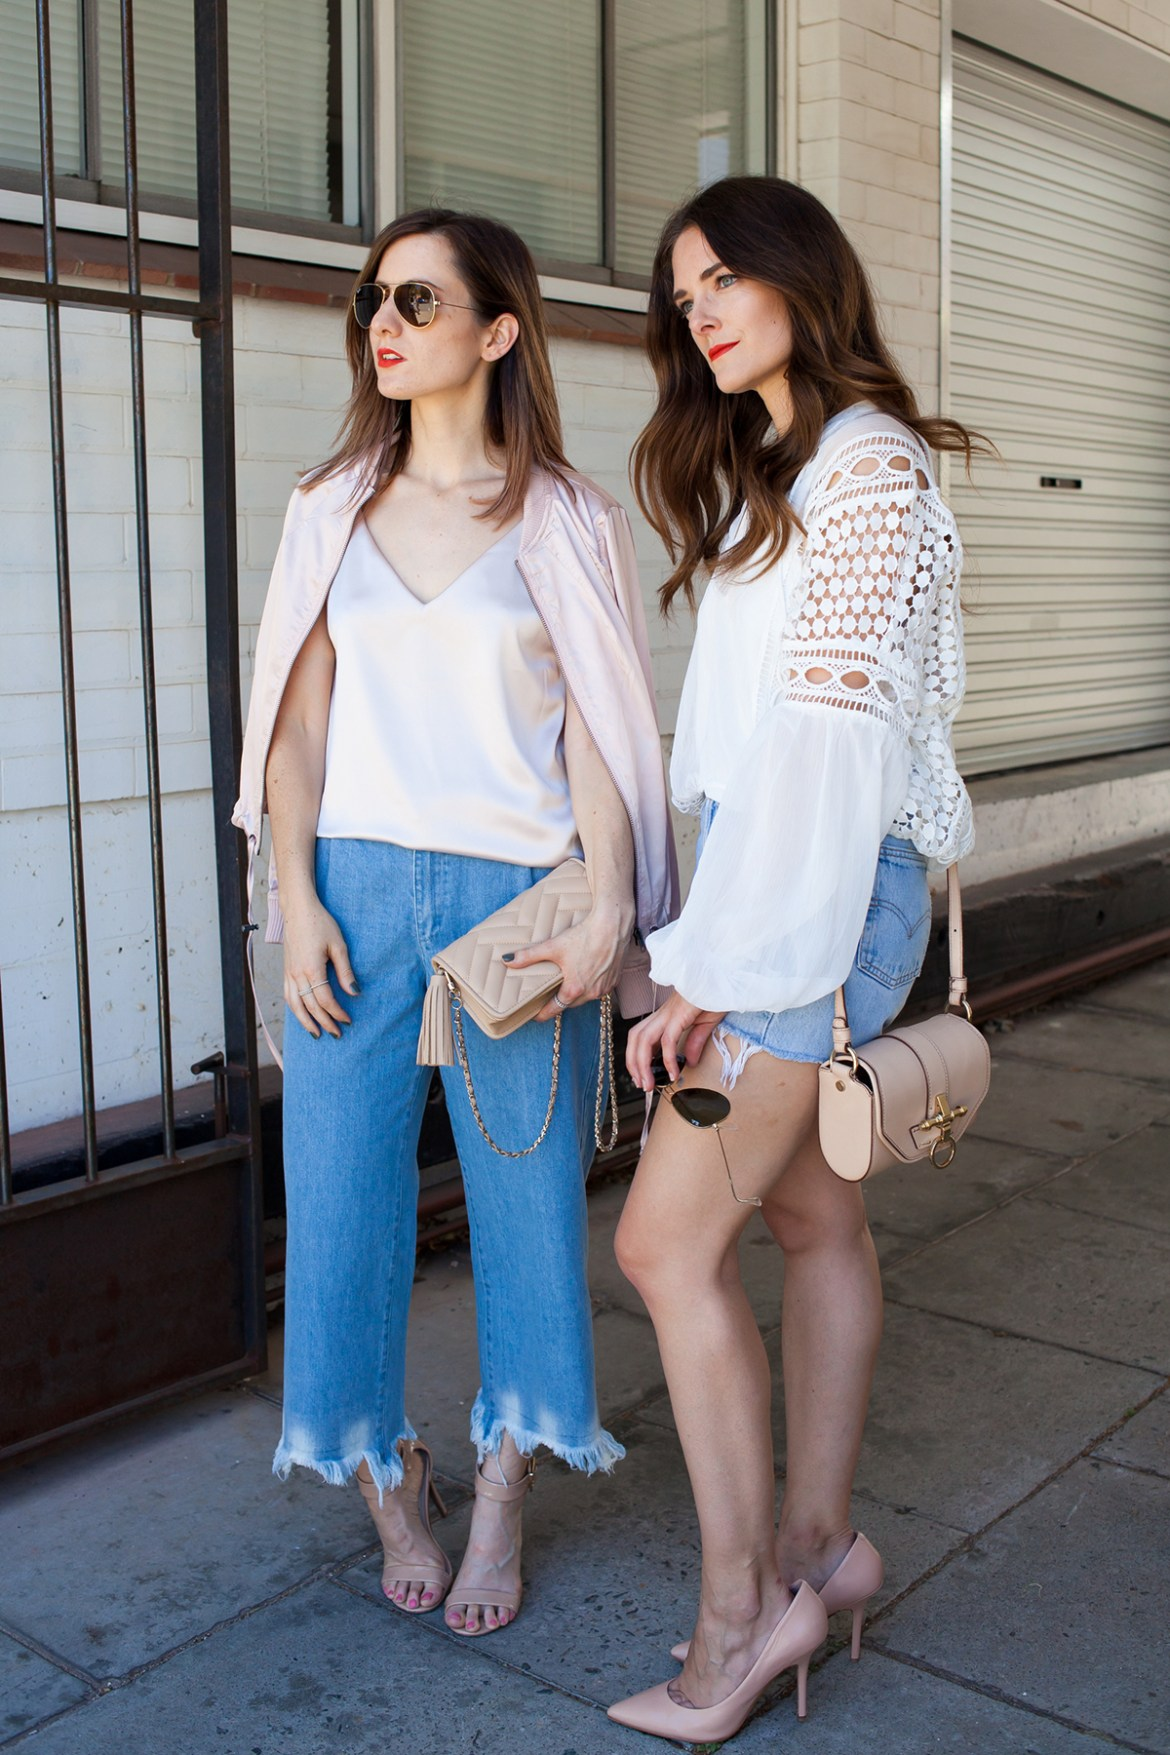 Perth fashion bloggers Inspiring Wit and She Does in MVN label street style denim